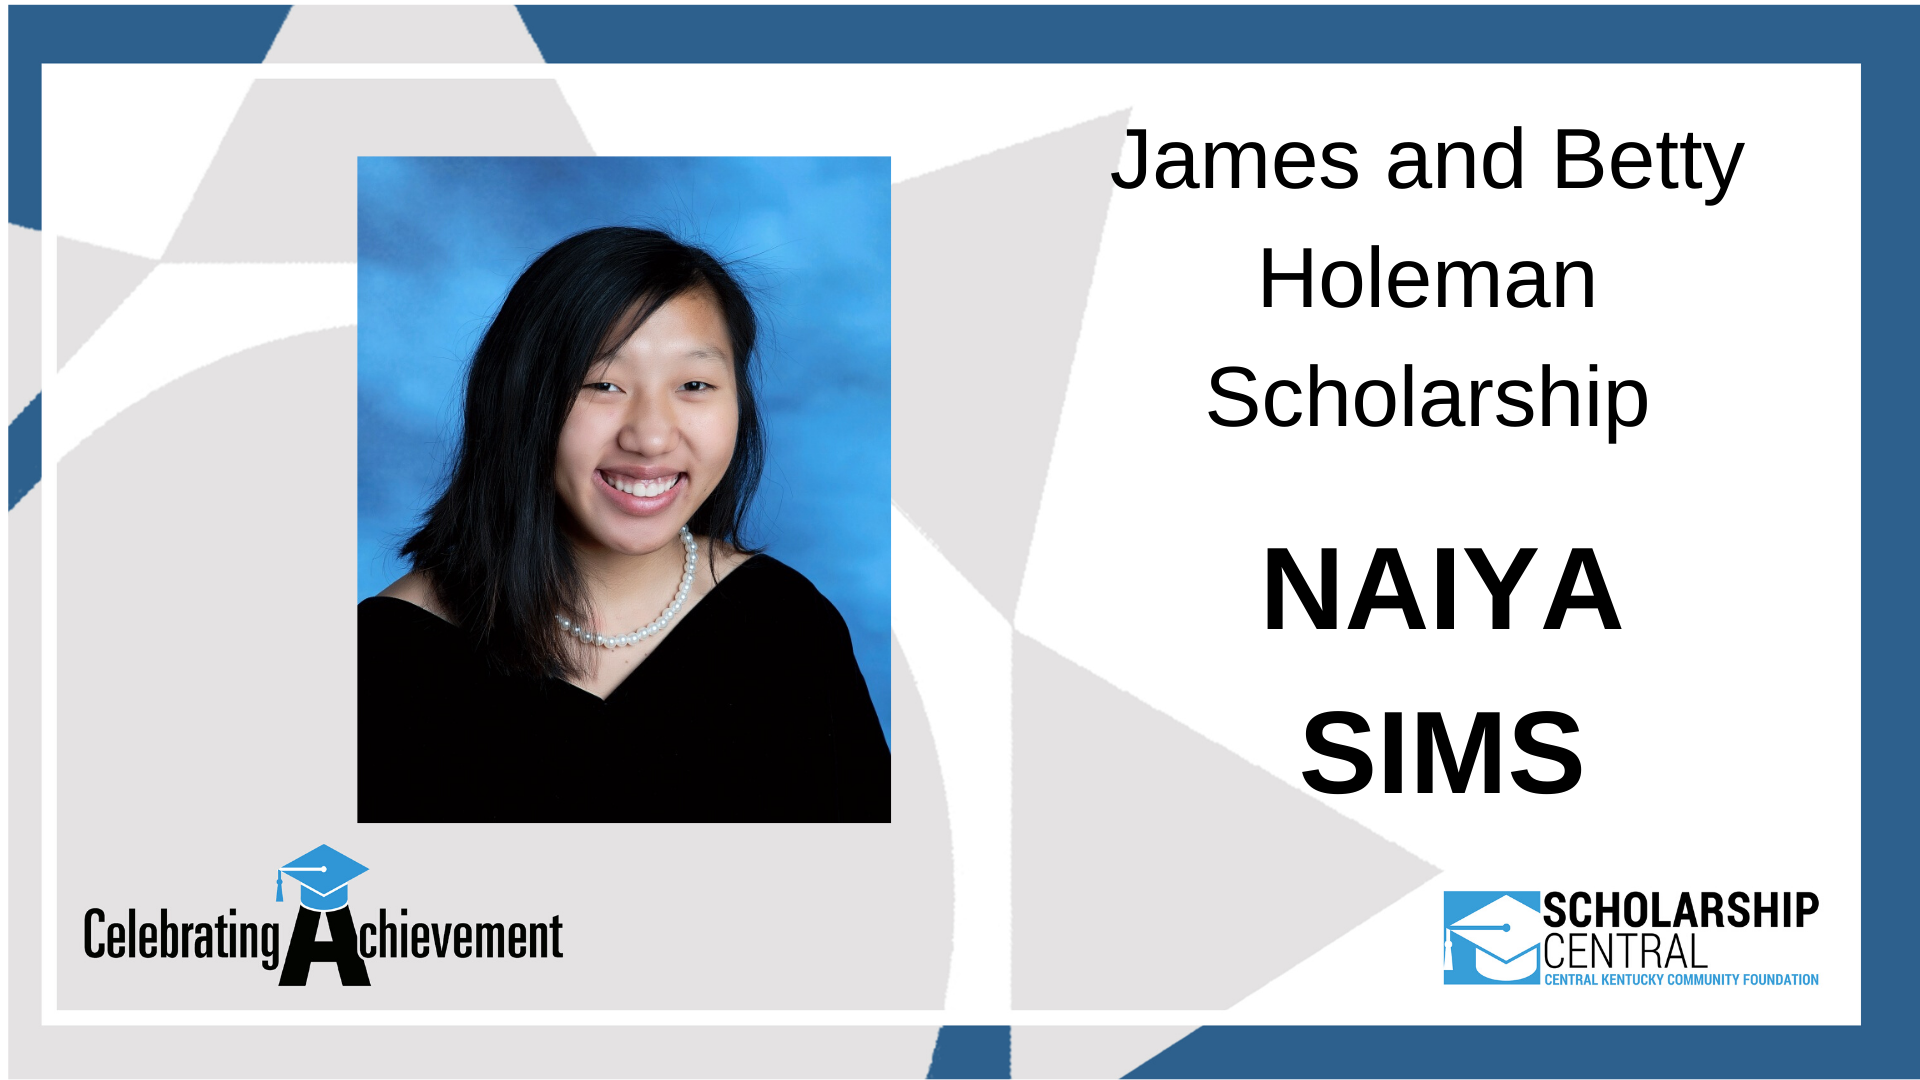 James and Betty Holeman Scholarship